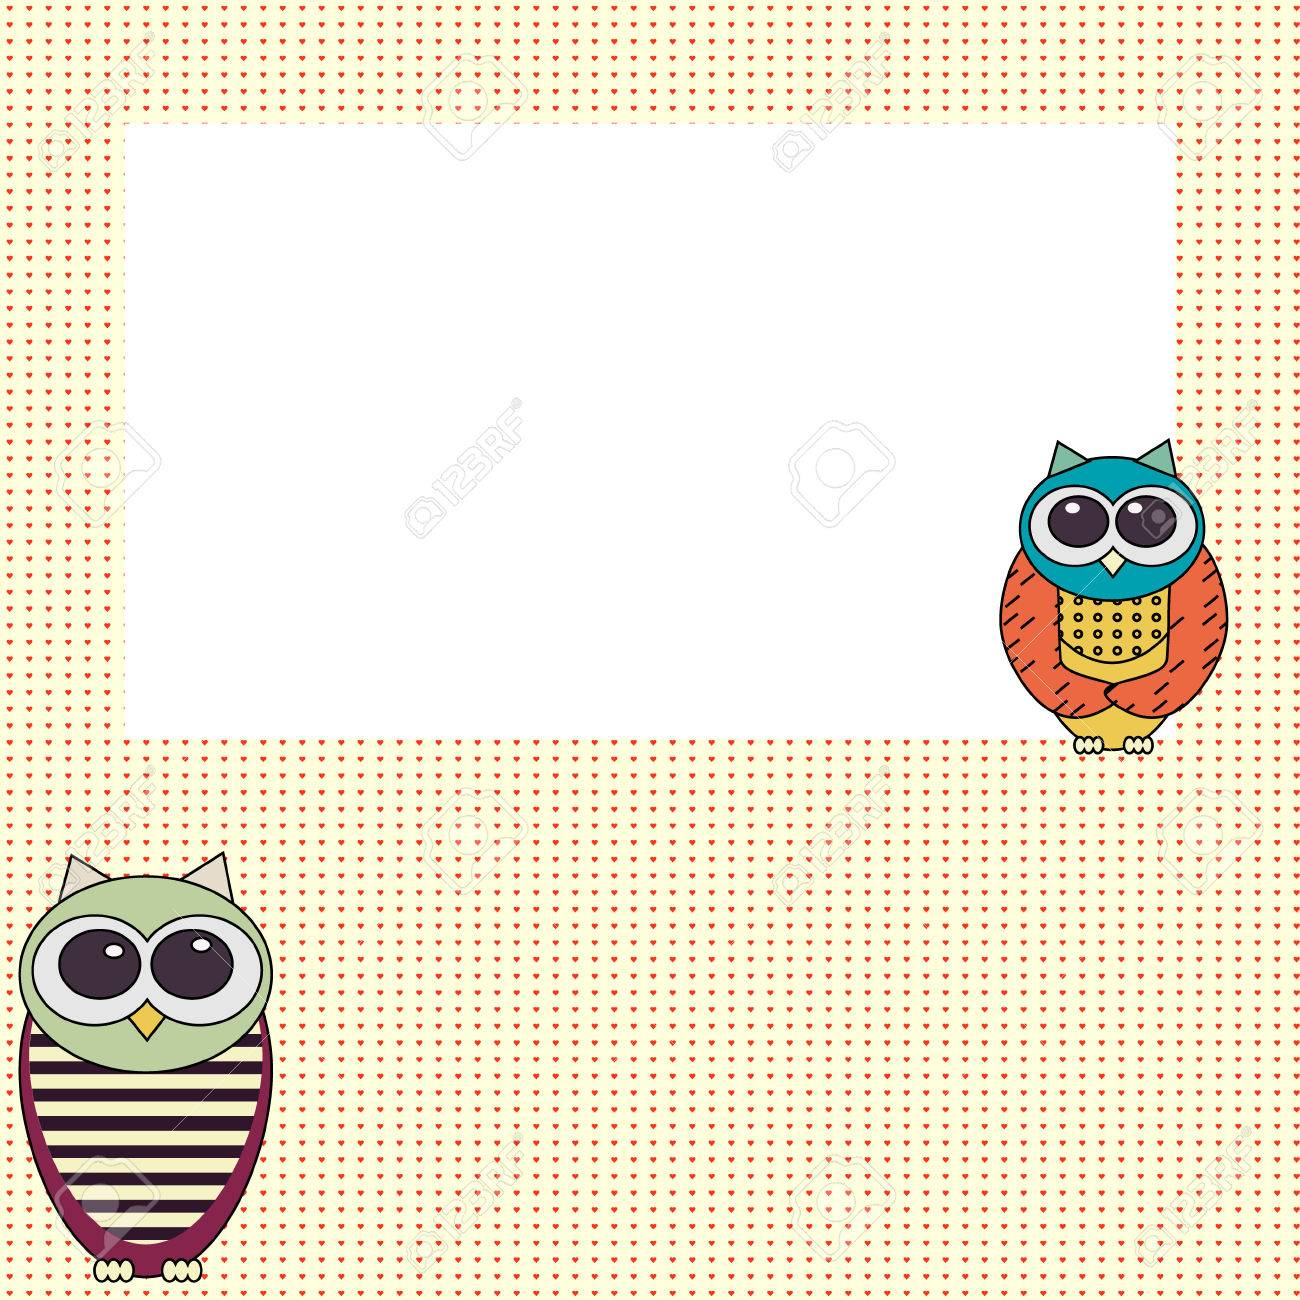 Owl invitation card template, colorful background, greeting card